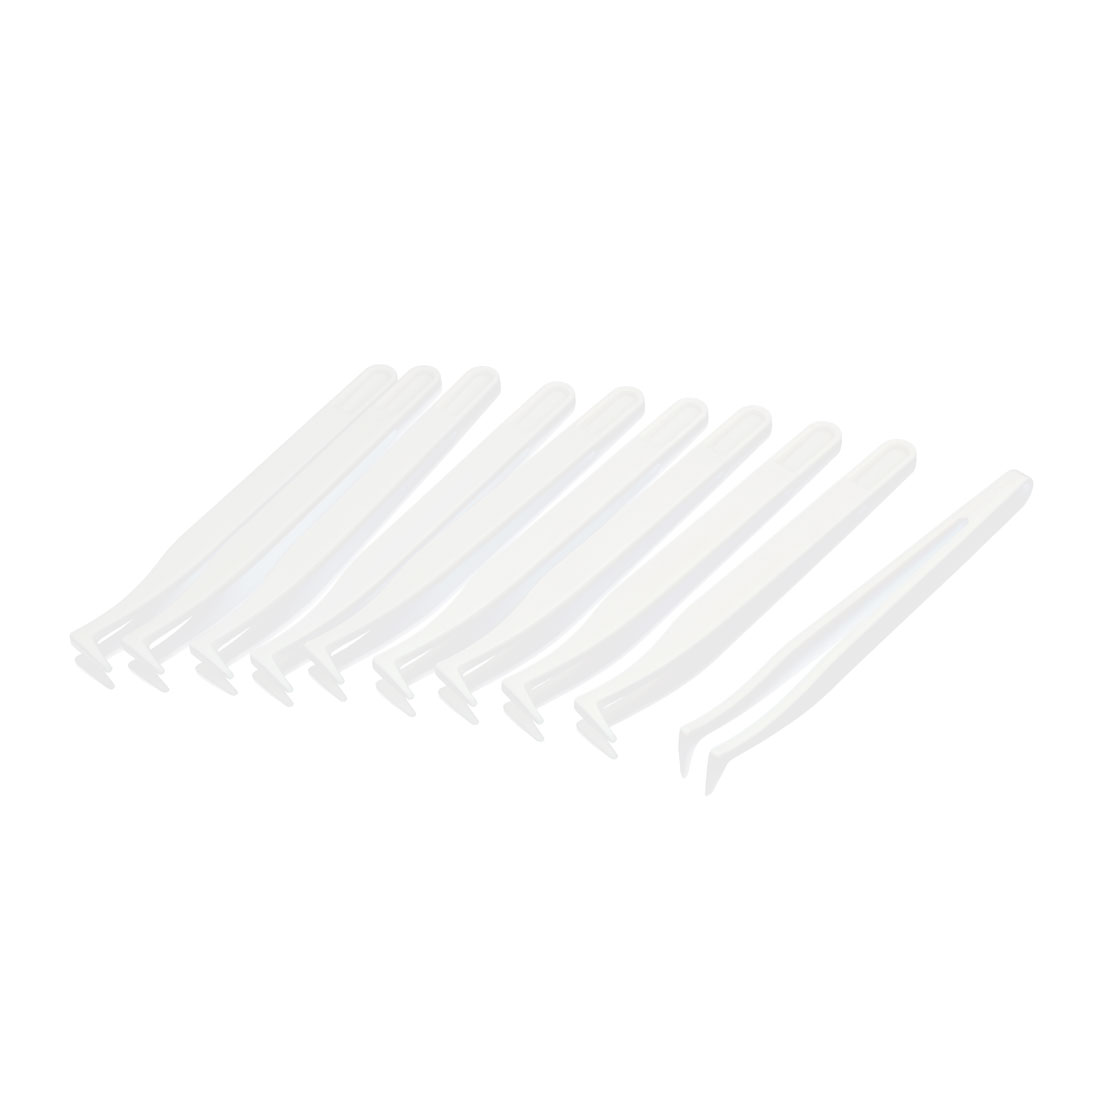 10pcs Anti Static Plastic Curved Tip Tweezer Nipper White 12cm